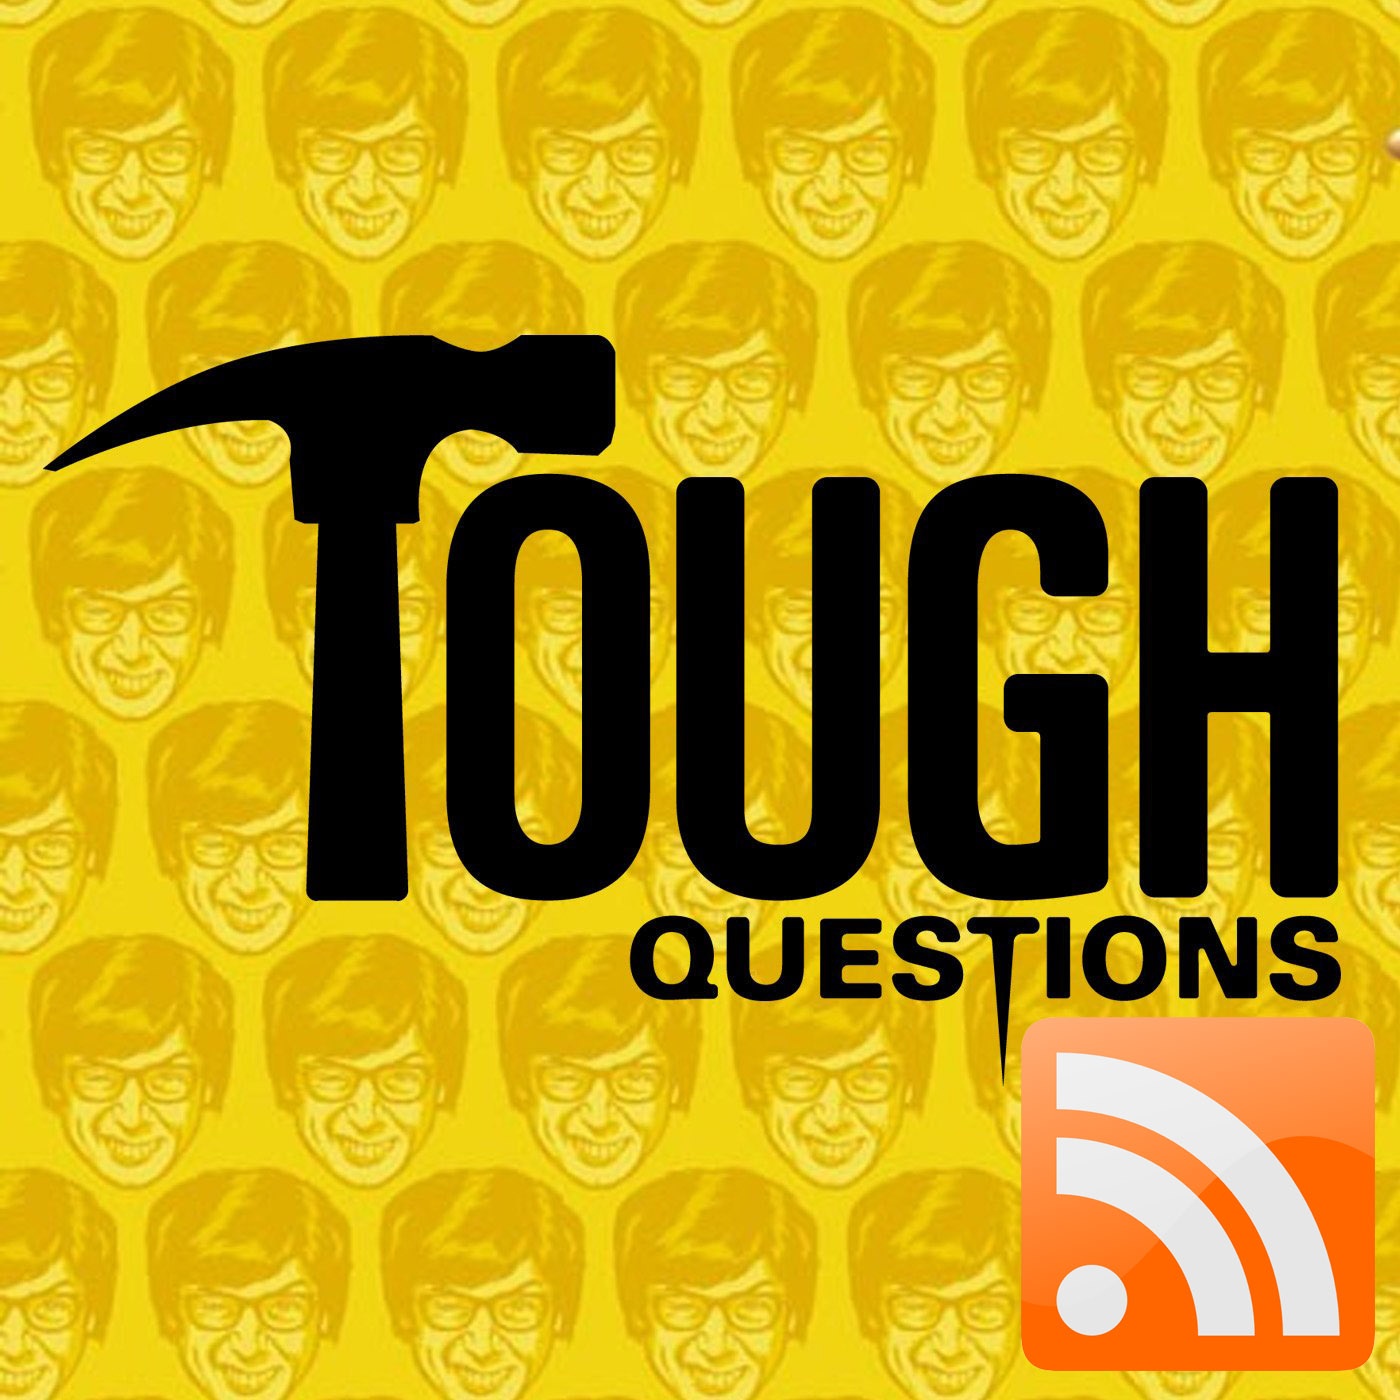 tough questions  RSS feed!  right-click this image and copy the link to grab the url directly.